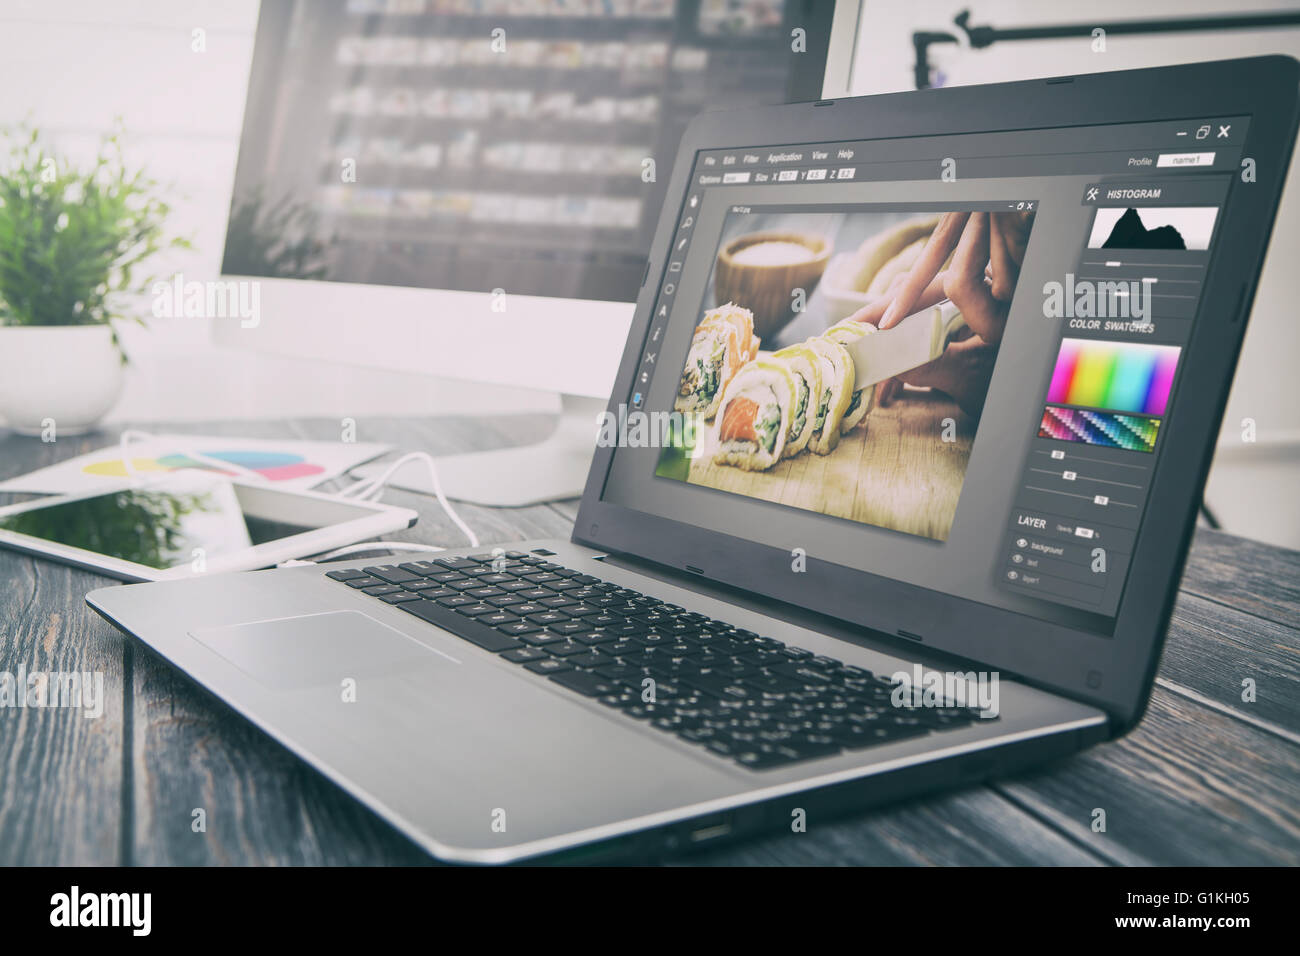 photographer camera editor monitor design laptop photo screen photography - stock image - Stock Image